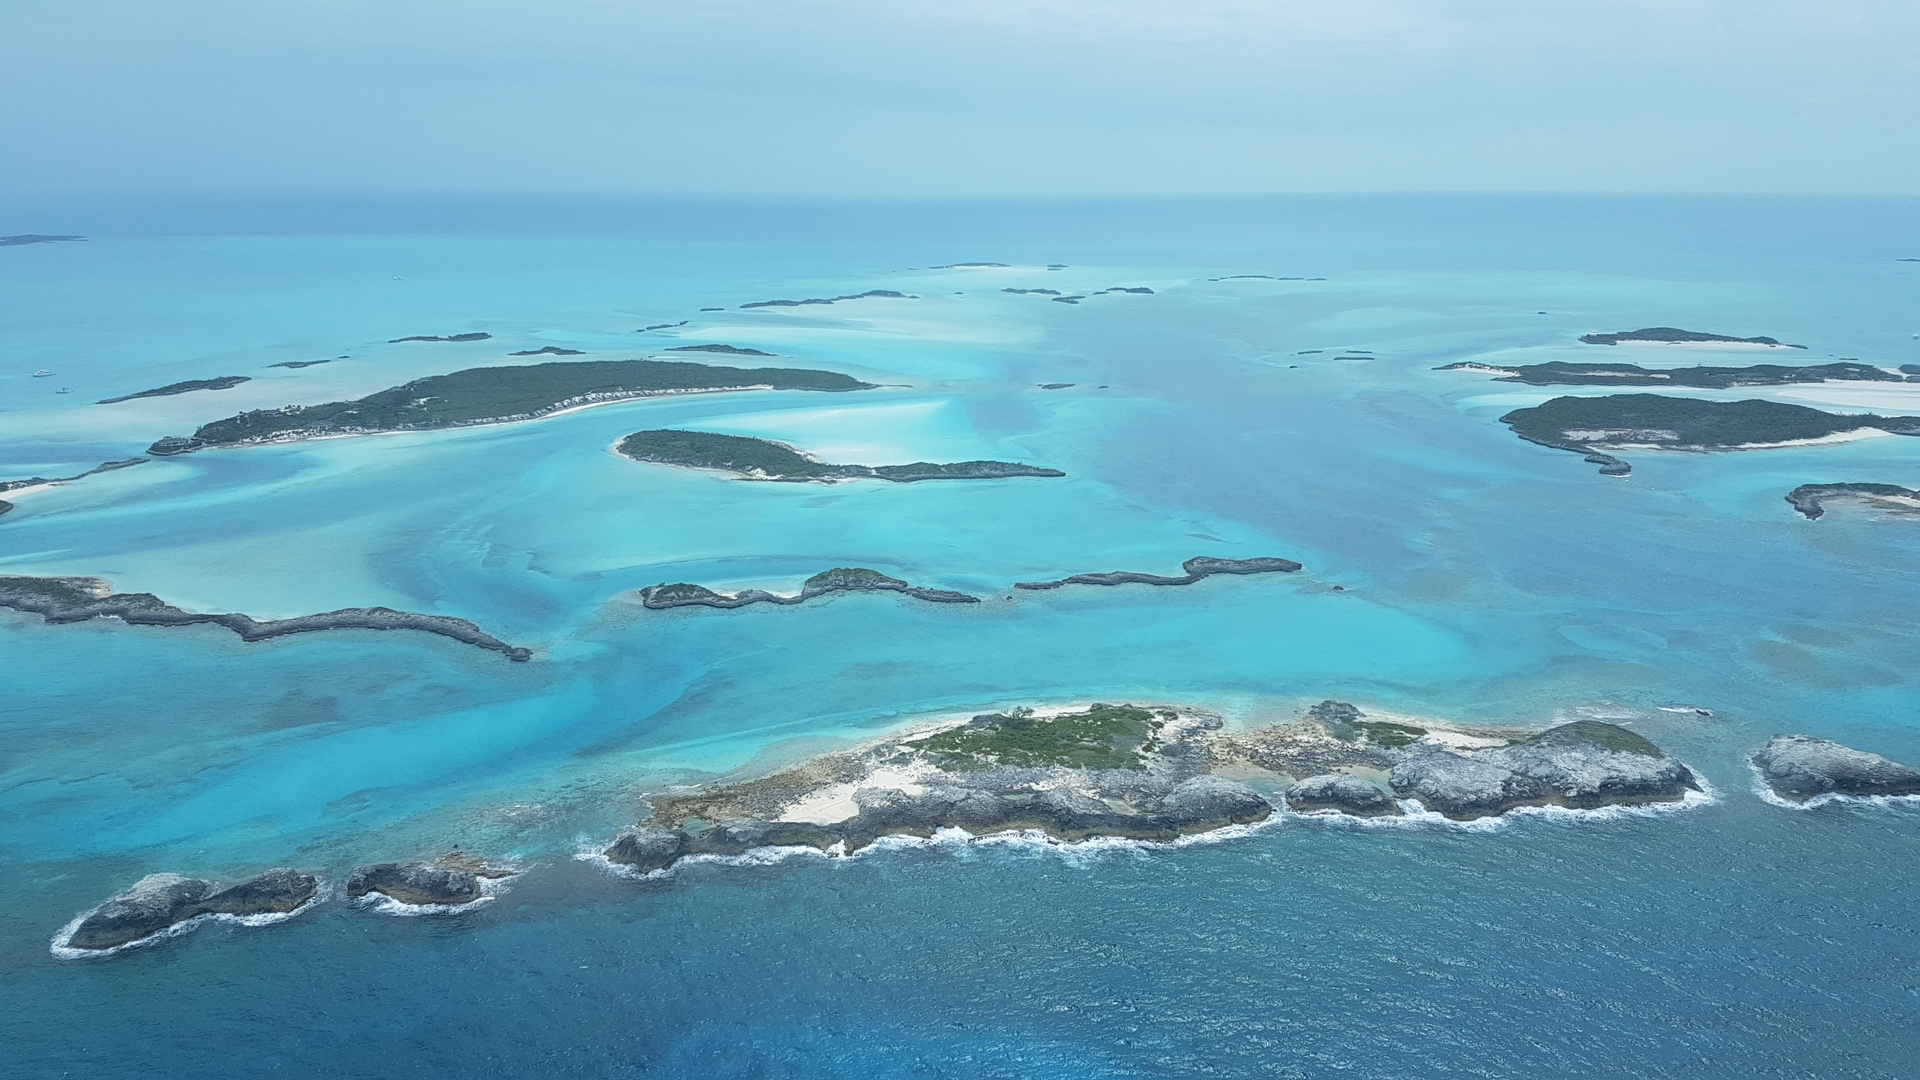 Bahamas from the Air